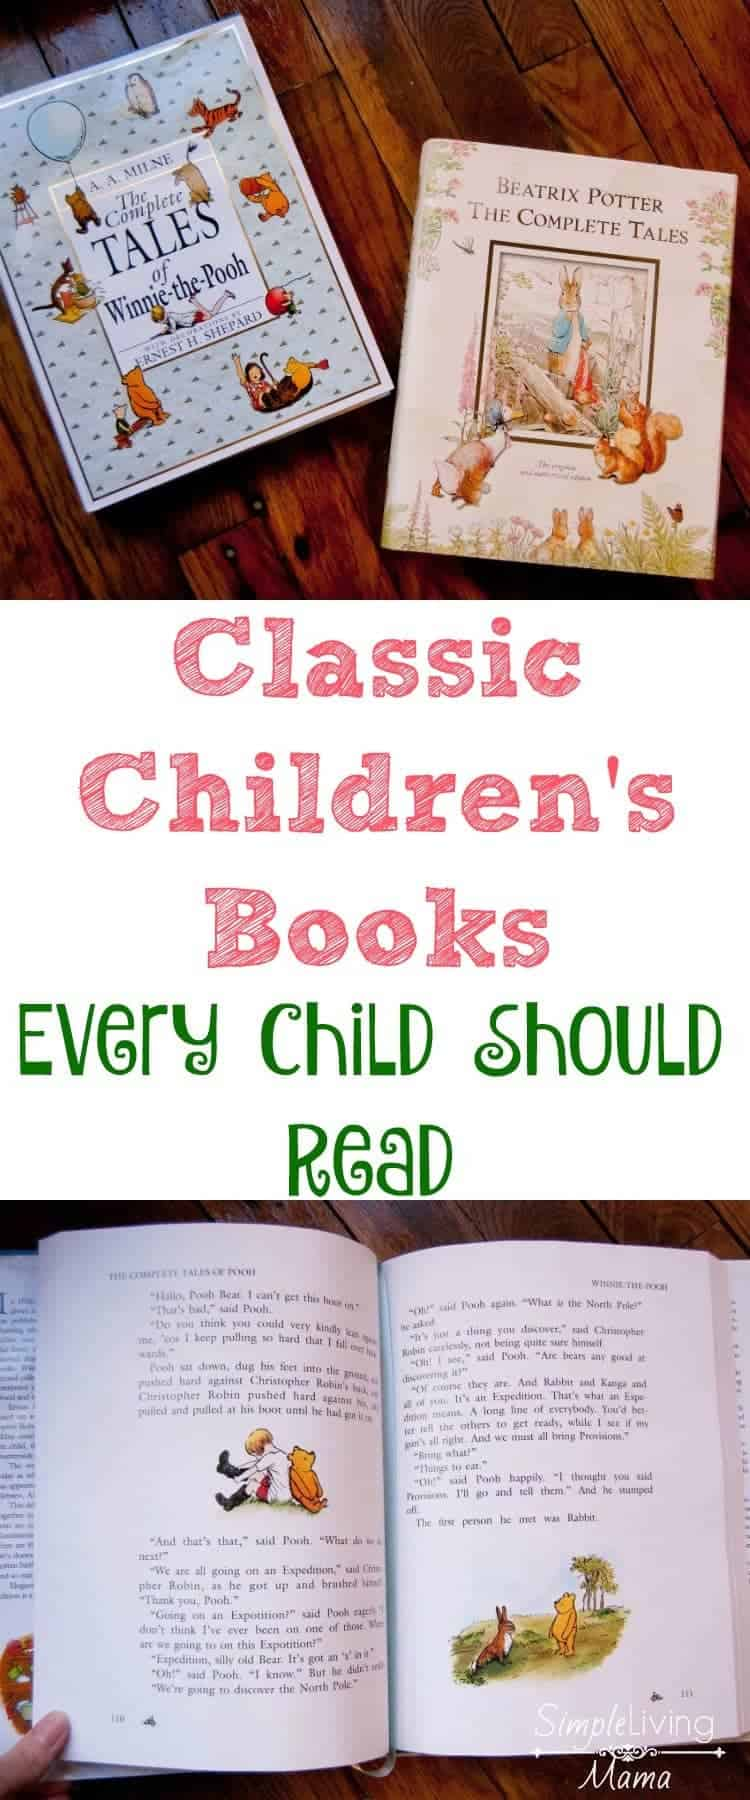 Classic children's books every child should read